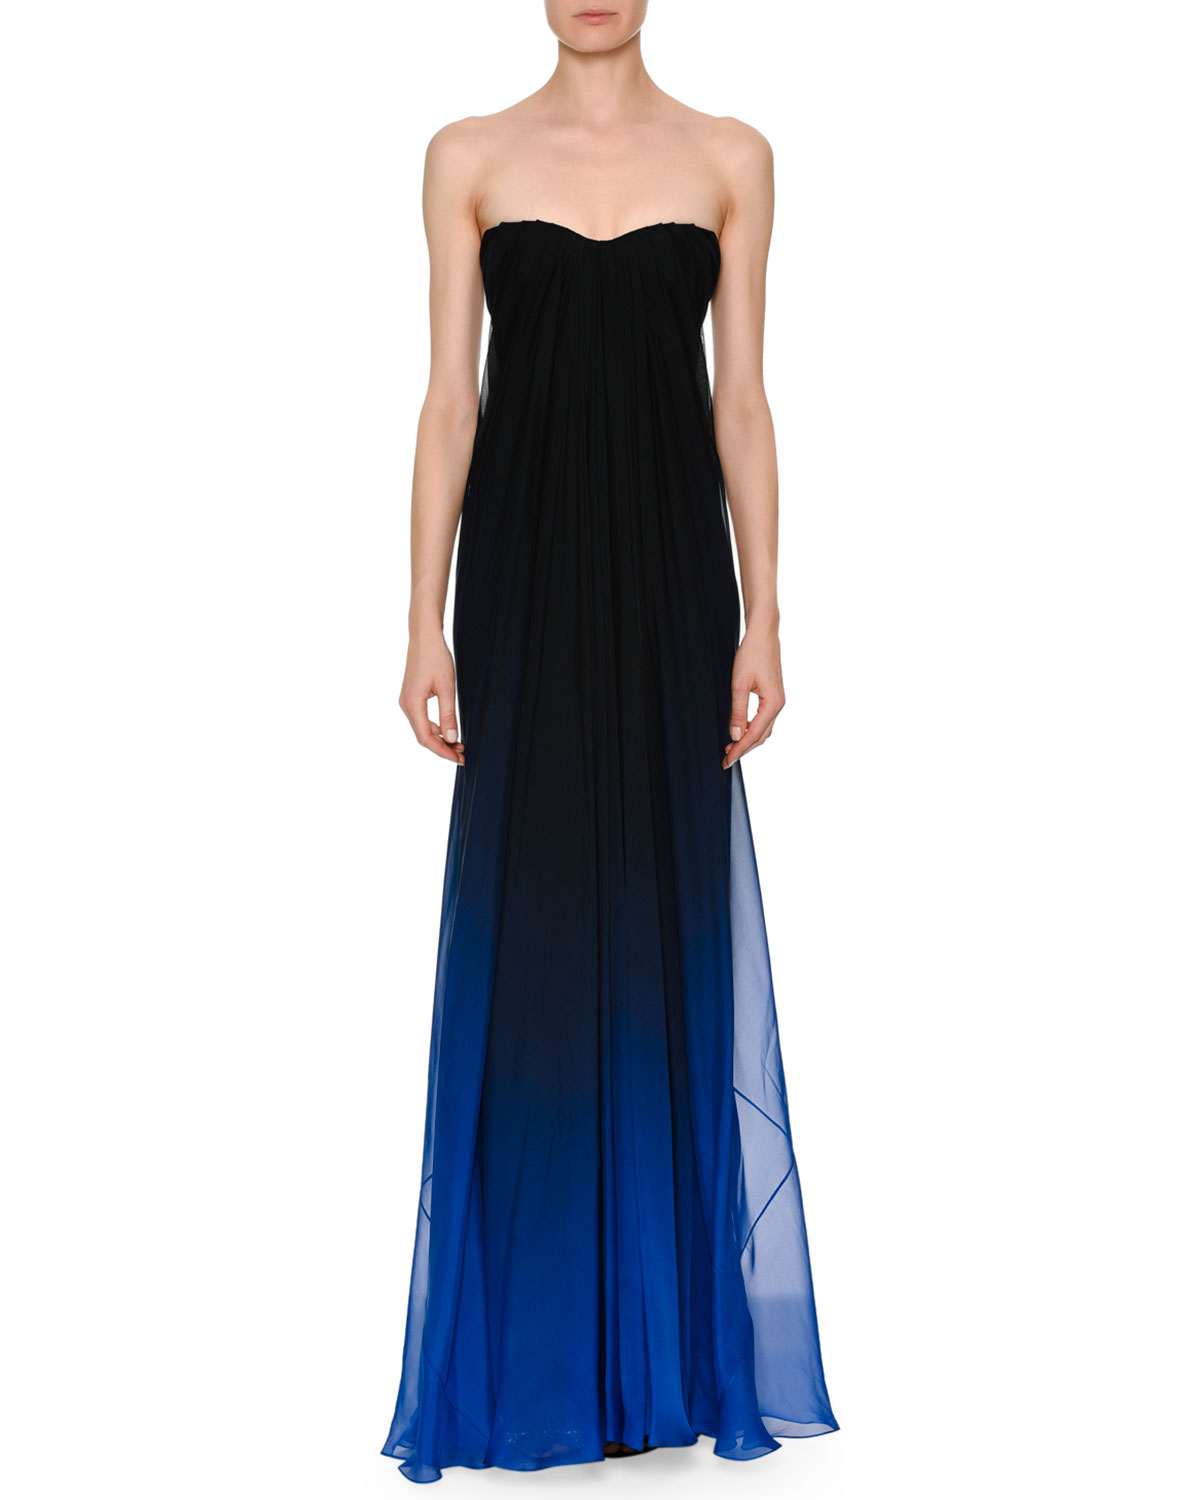 Blue Strapless Gown   Neiman Marcus